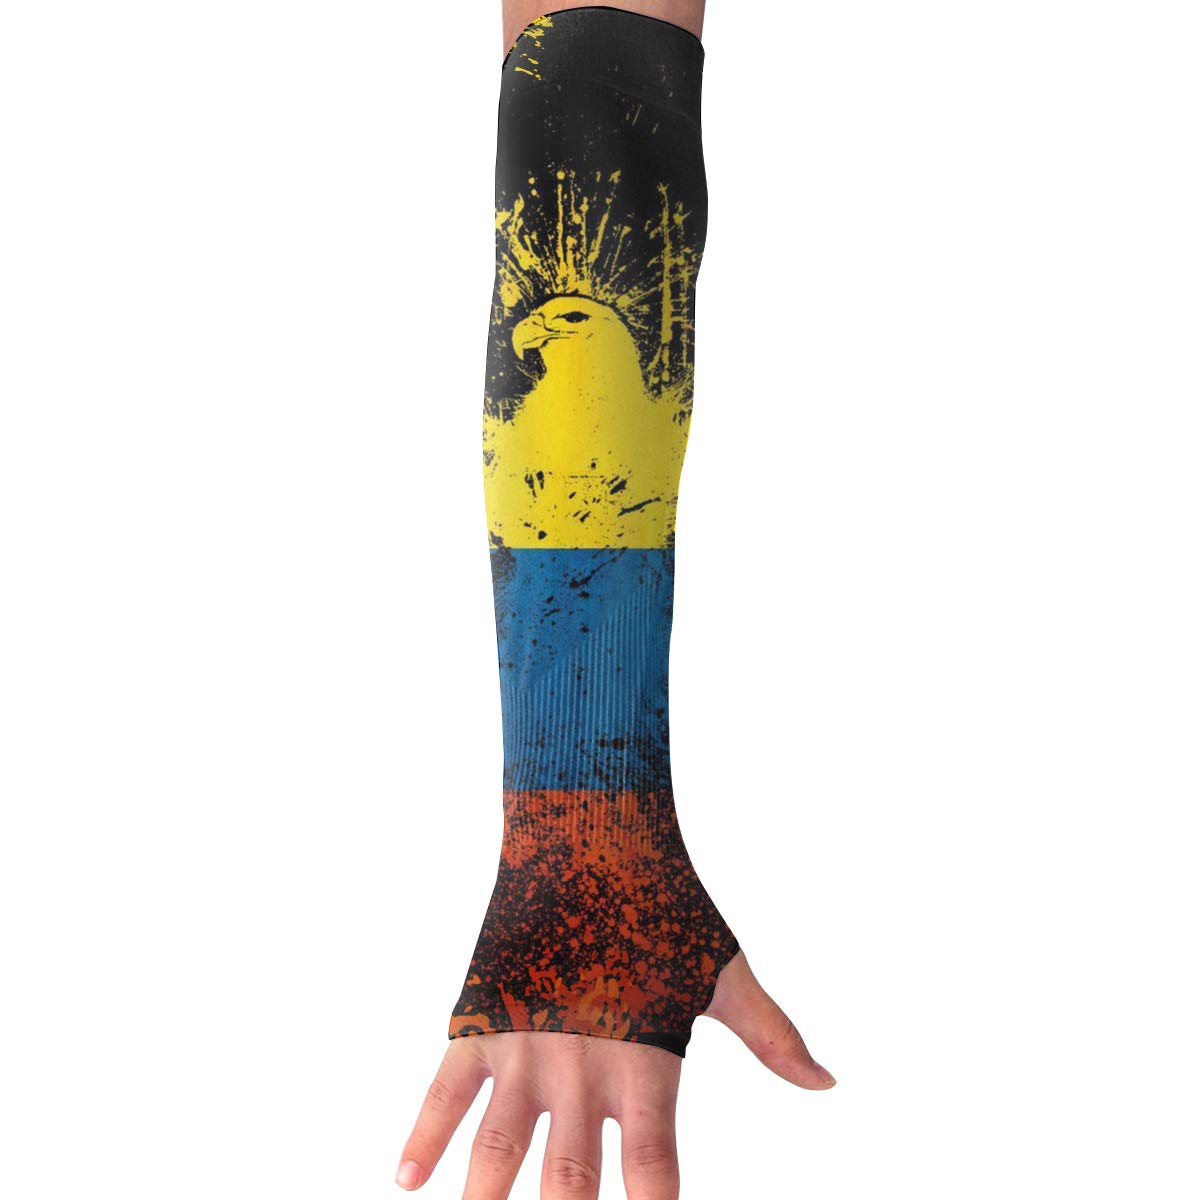 Arm Cooling Sleeves Colombian Flag and Eagle UV Sun Protection Arm Cover Hand Covers